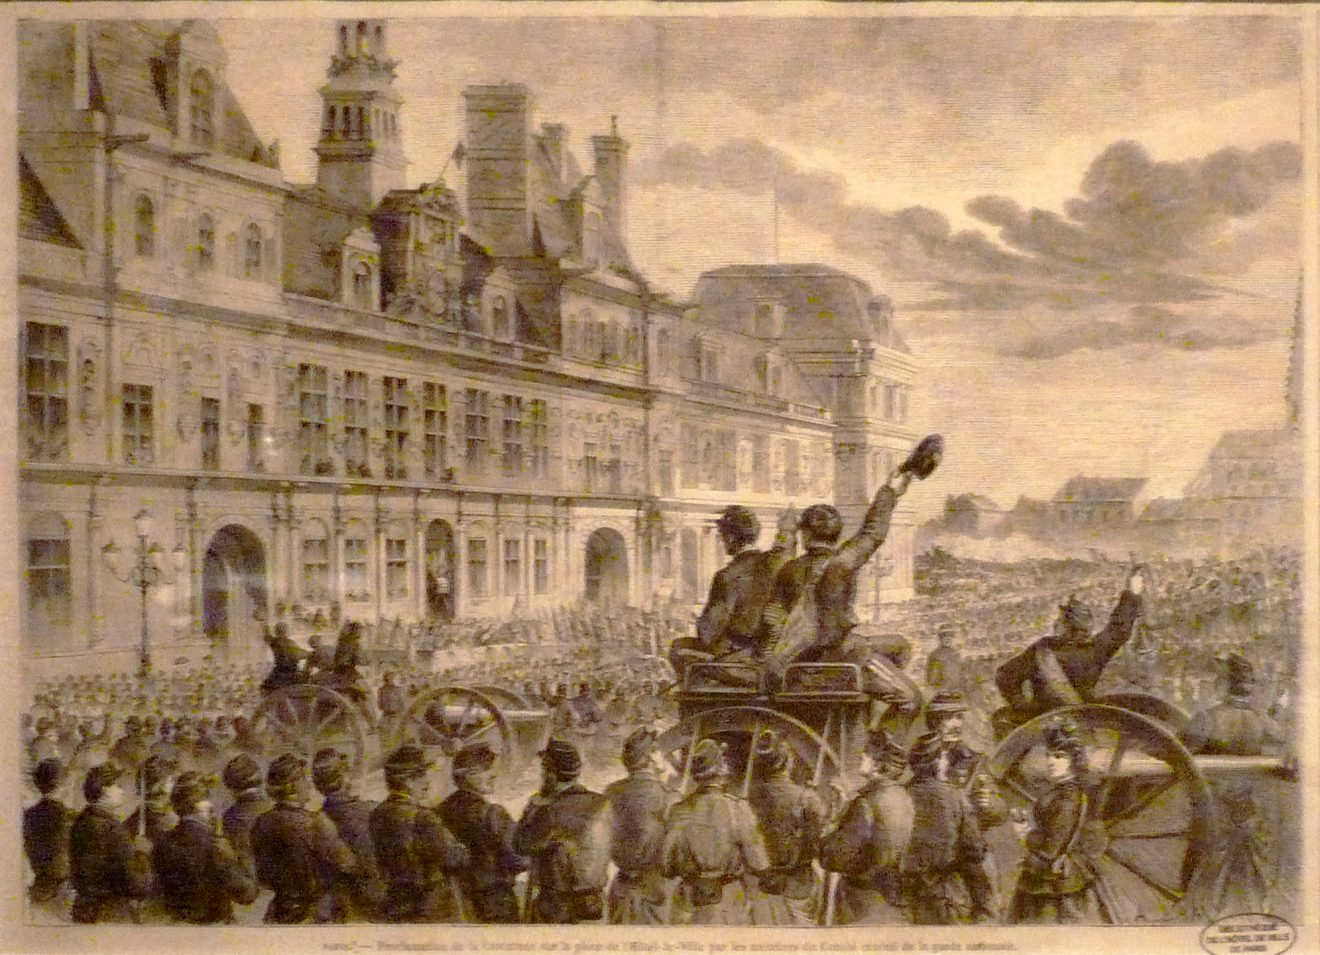 https://upload.wikimedia.org/wikipedia/commons/a/a8/Commune_de_Paris_r%C3%A9sultats_des_%C3%A9lection_28_mars_1871.jpg